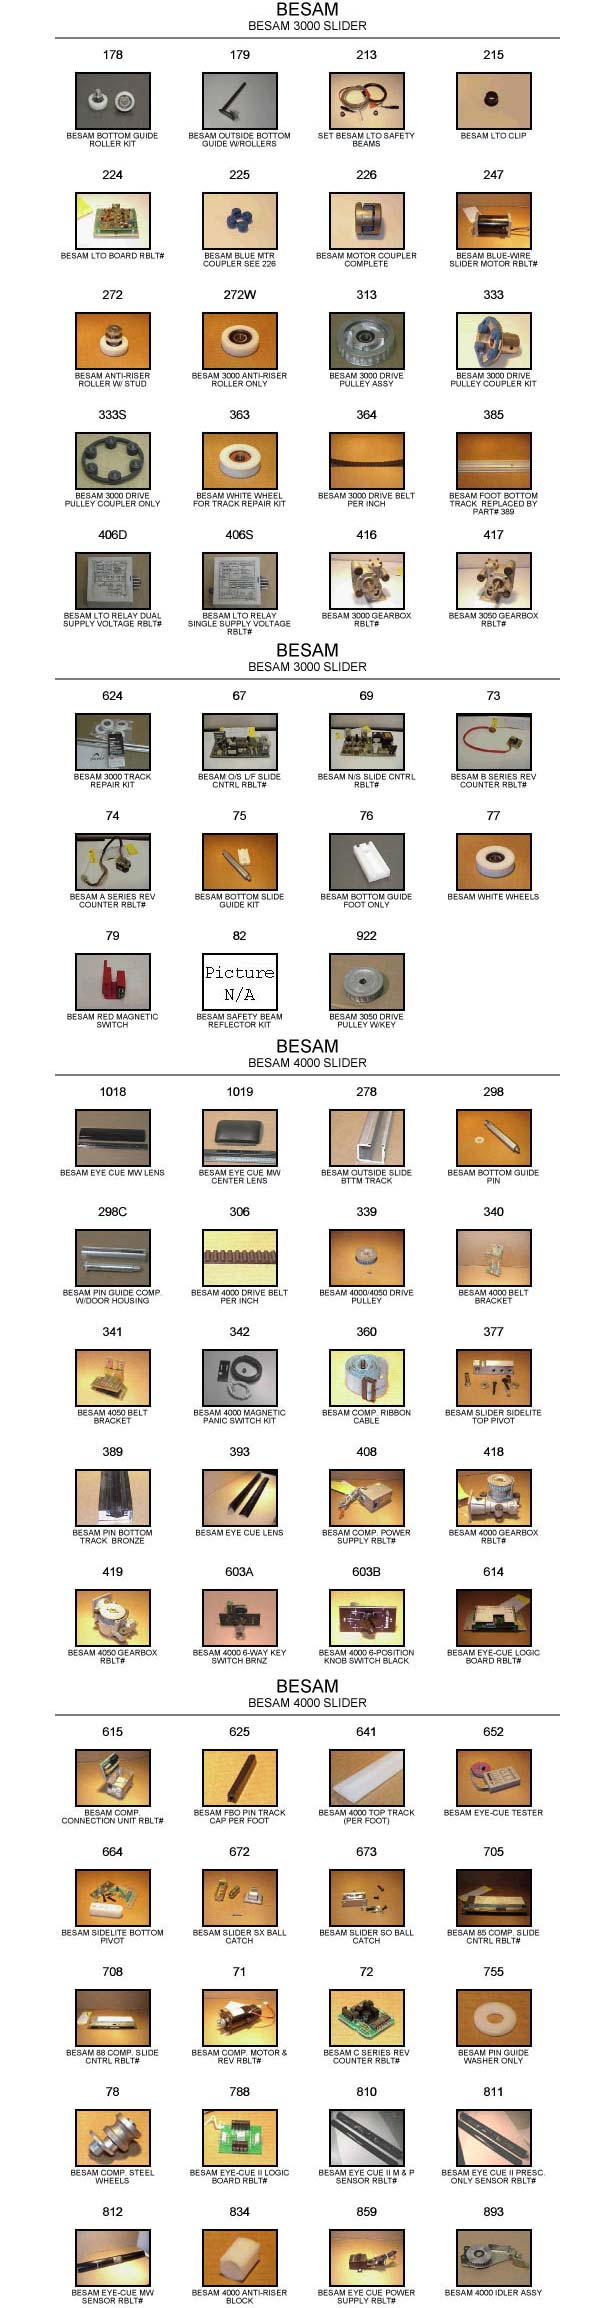 Besam automatic door parts catalog 1